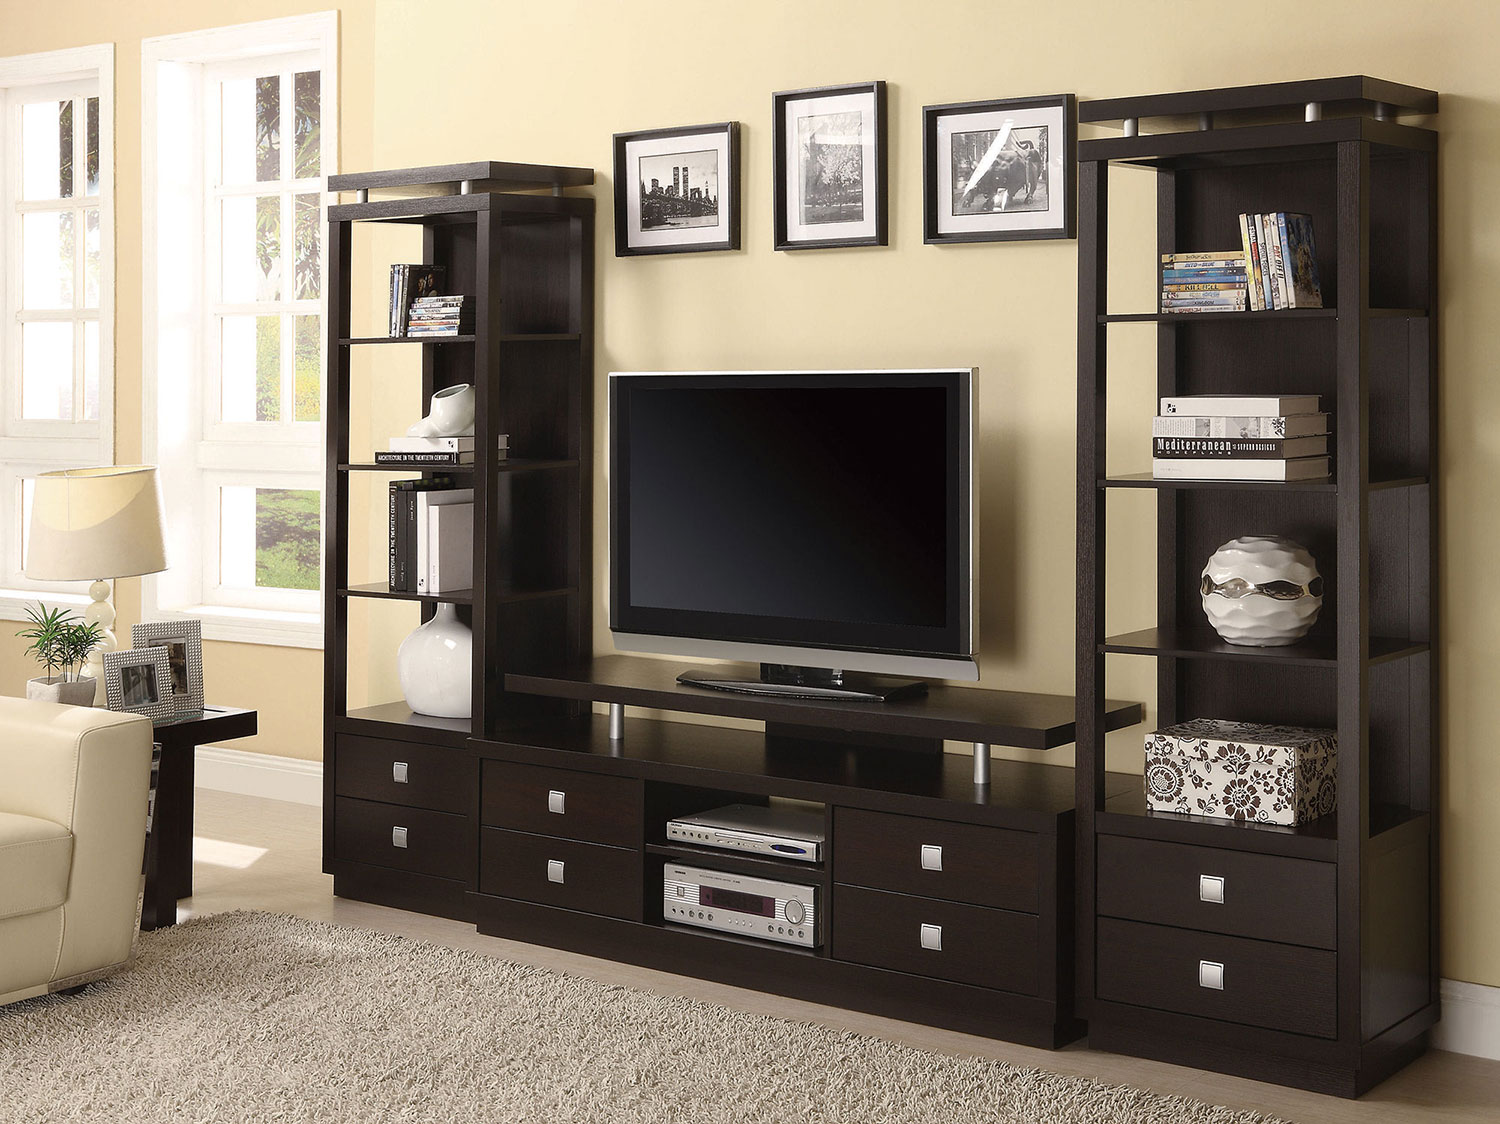 Coaster 700696 Entertainment Wall Unit - Cappuccino